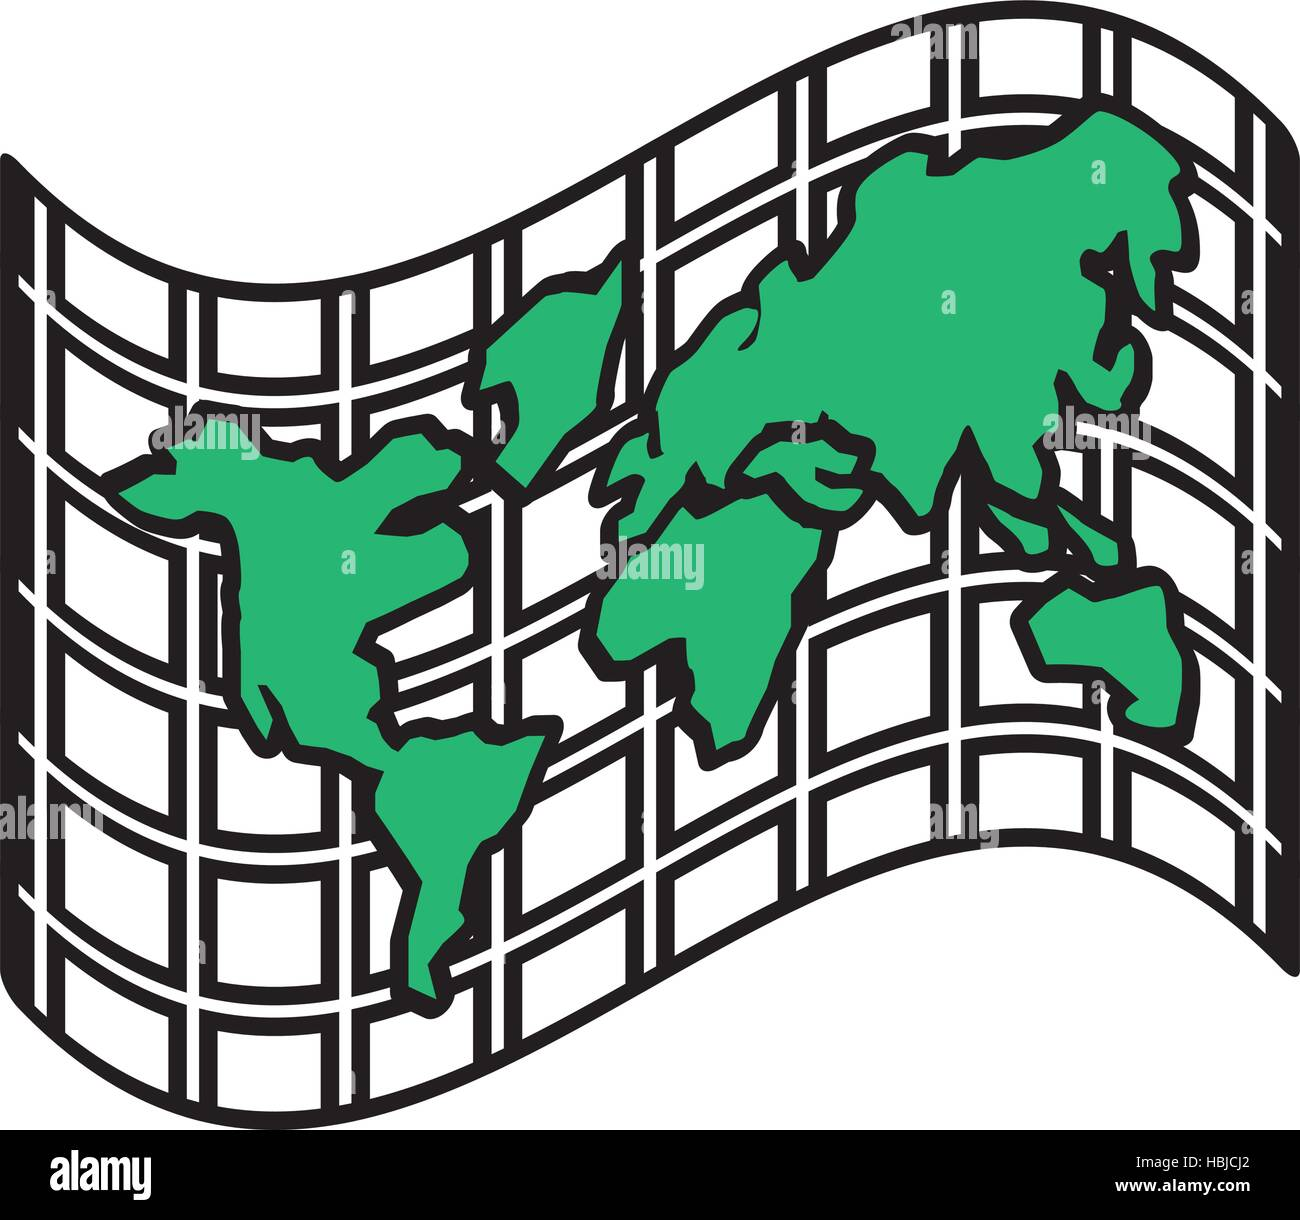 Outline world map location position vector illustration eps 10 stock outline world map location position vector illustration eps 10 gumiabroncs Gallery